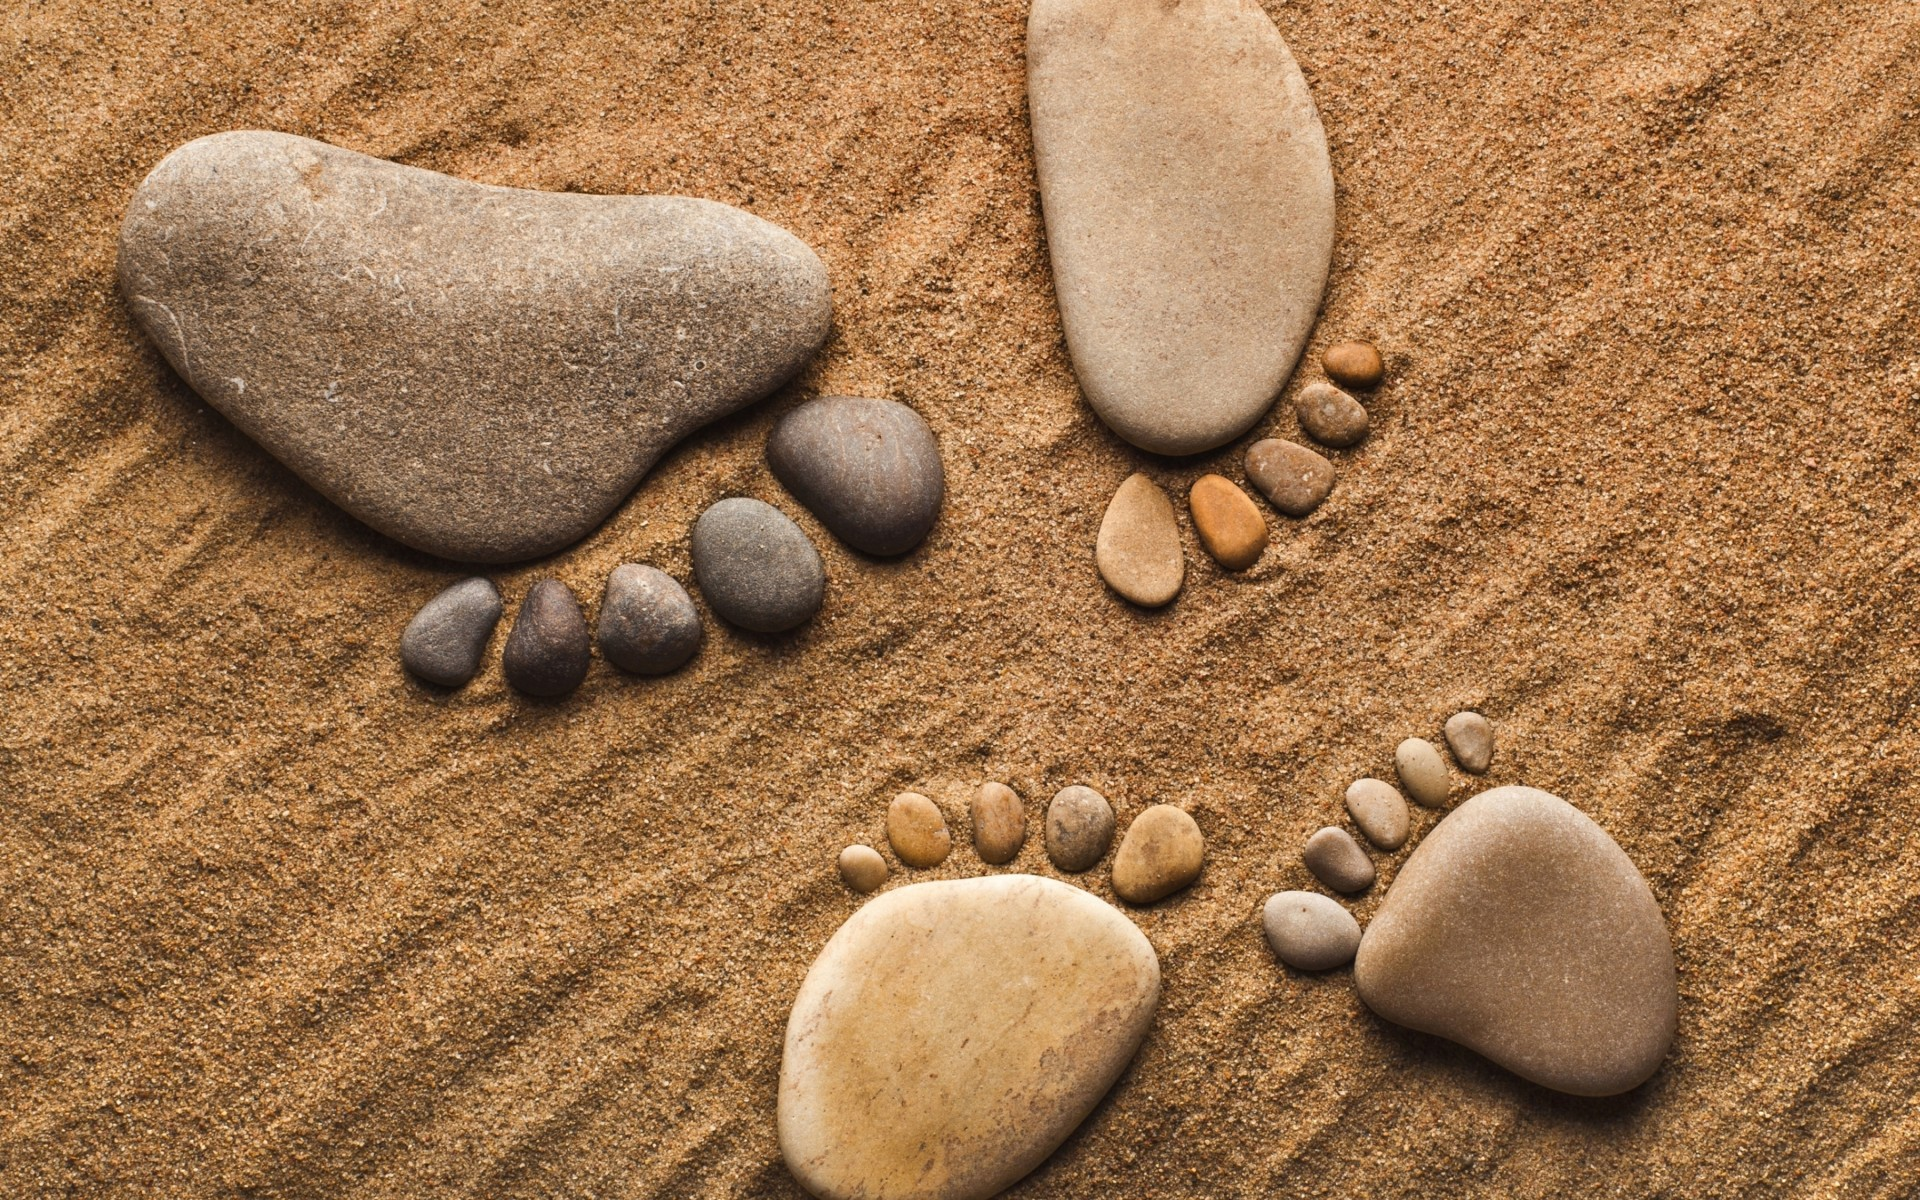 Feet rocks on sand.jpg